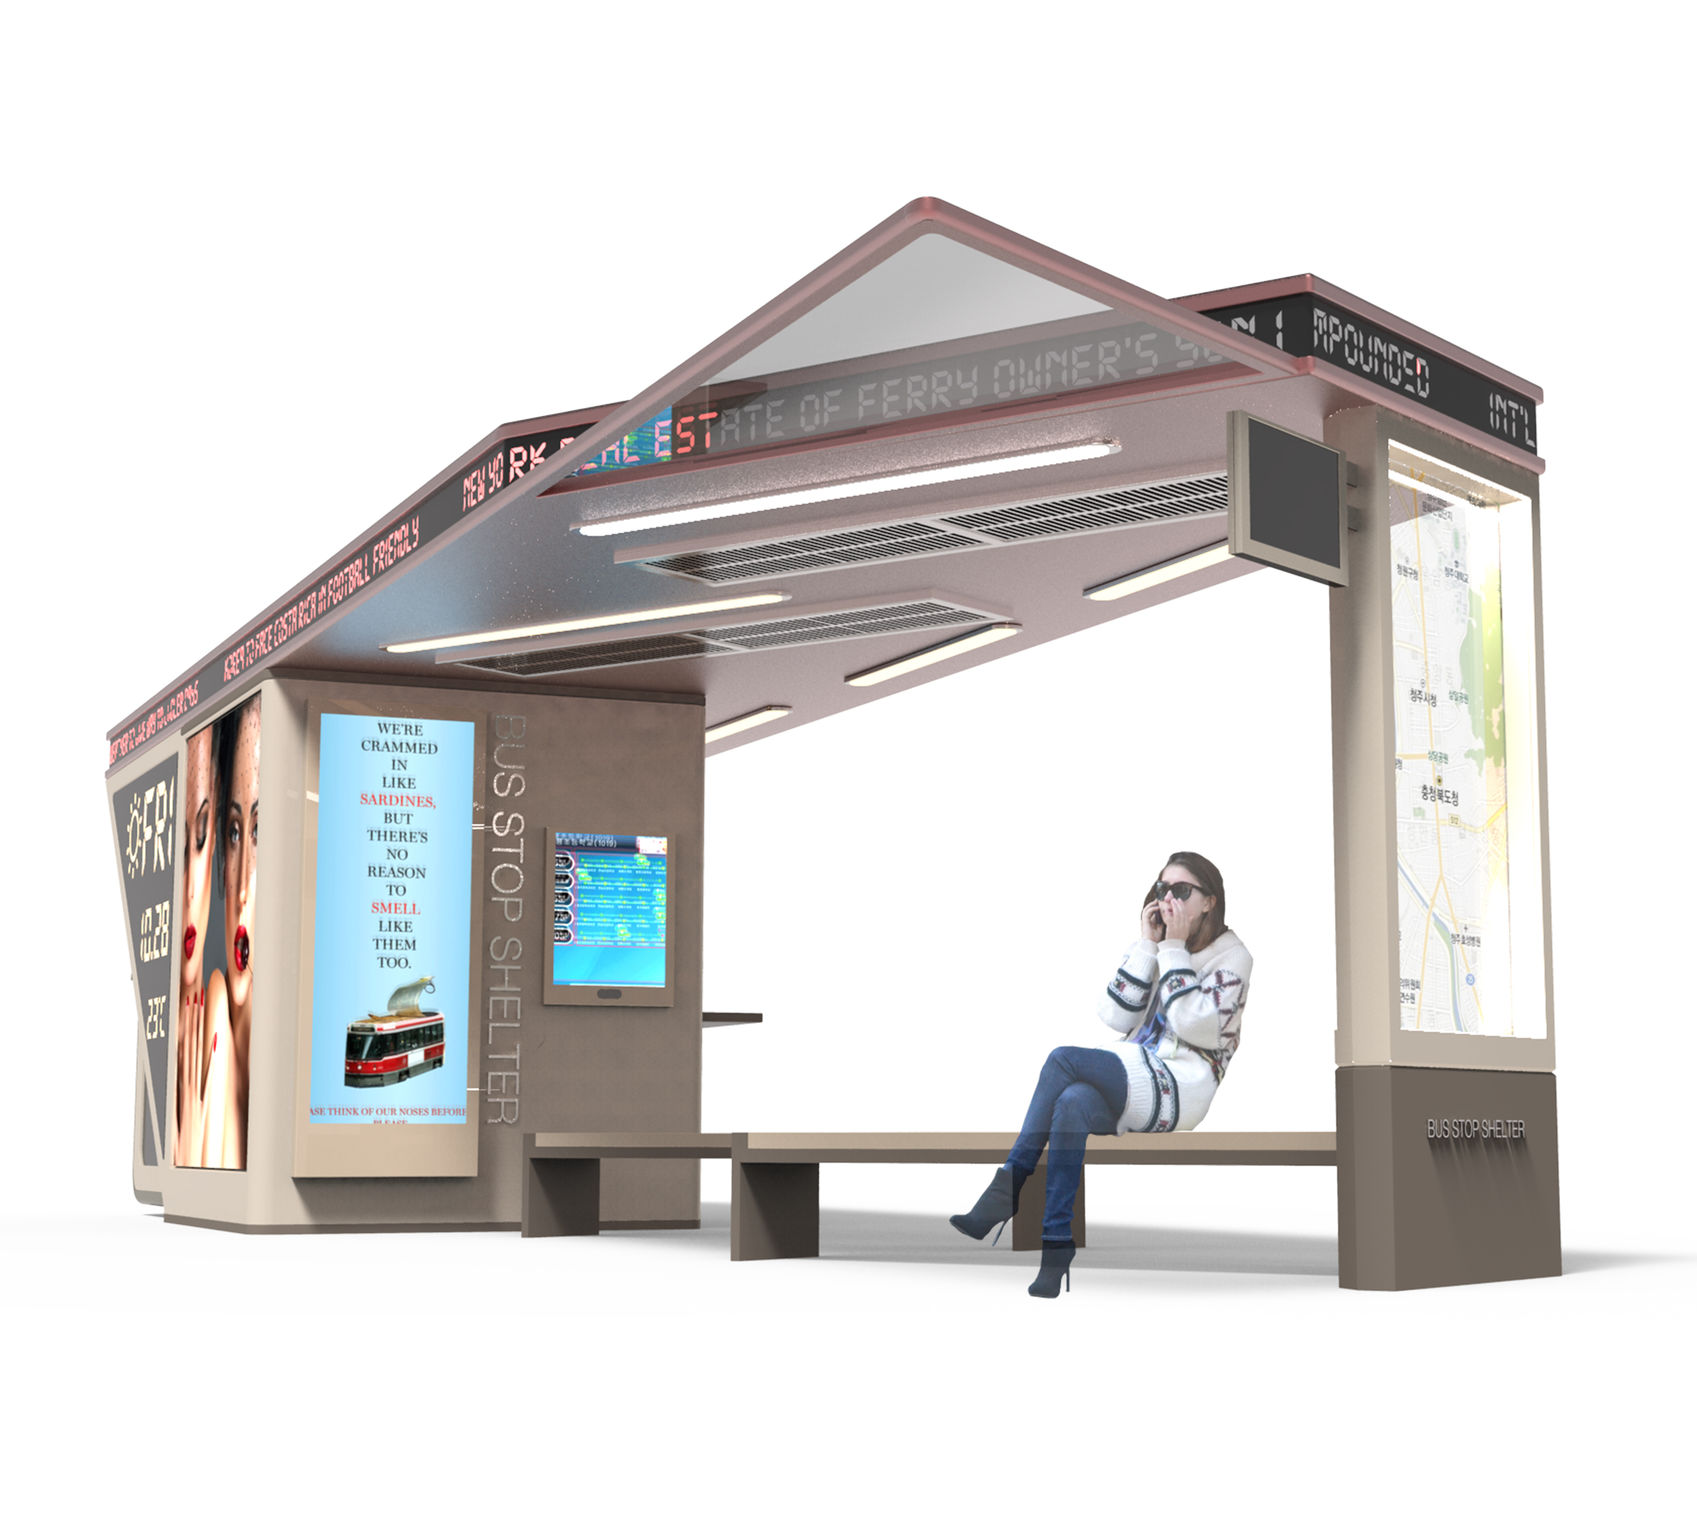 170125 Bus Stop Shelter further Larch Garden Buildings moreover Spring Time Decor 3d Paper Flower Garland further Build Your Own Shed With The Help Of Wood Shed Plans together with Christmas Cards. on design your own shed